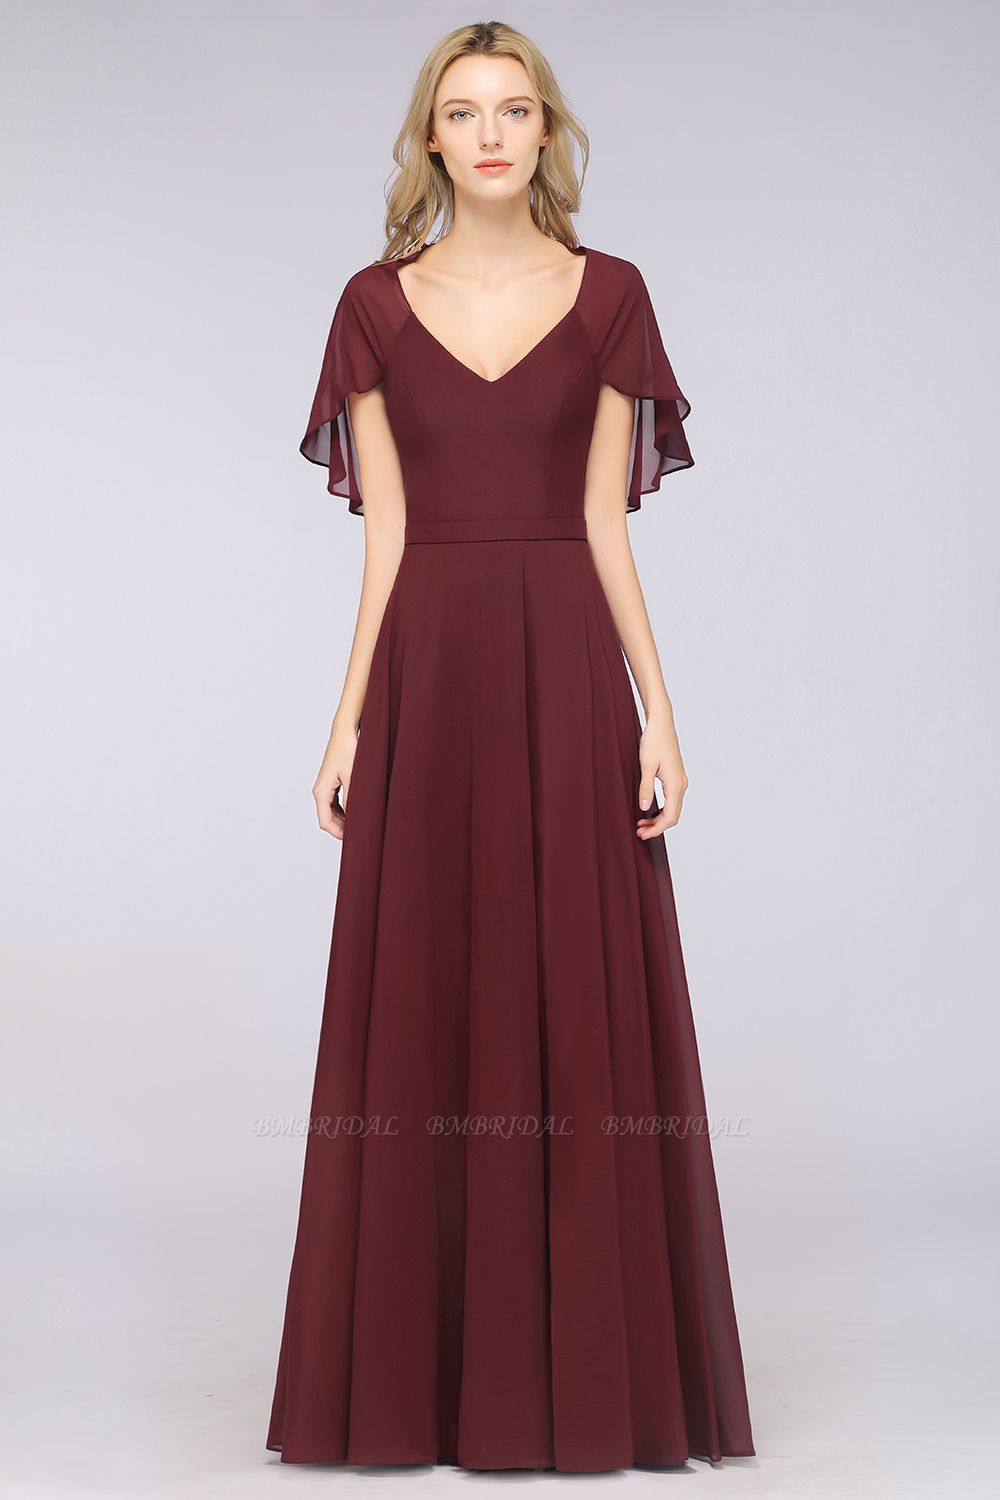 Chic Satin V-Neck Long Burgundy Chiffon Bridesmaid Dress with Flutter Sleeve